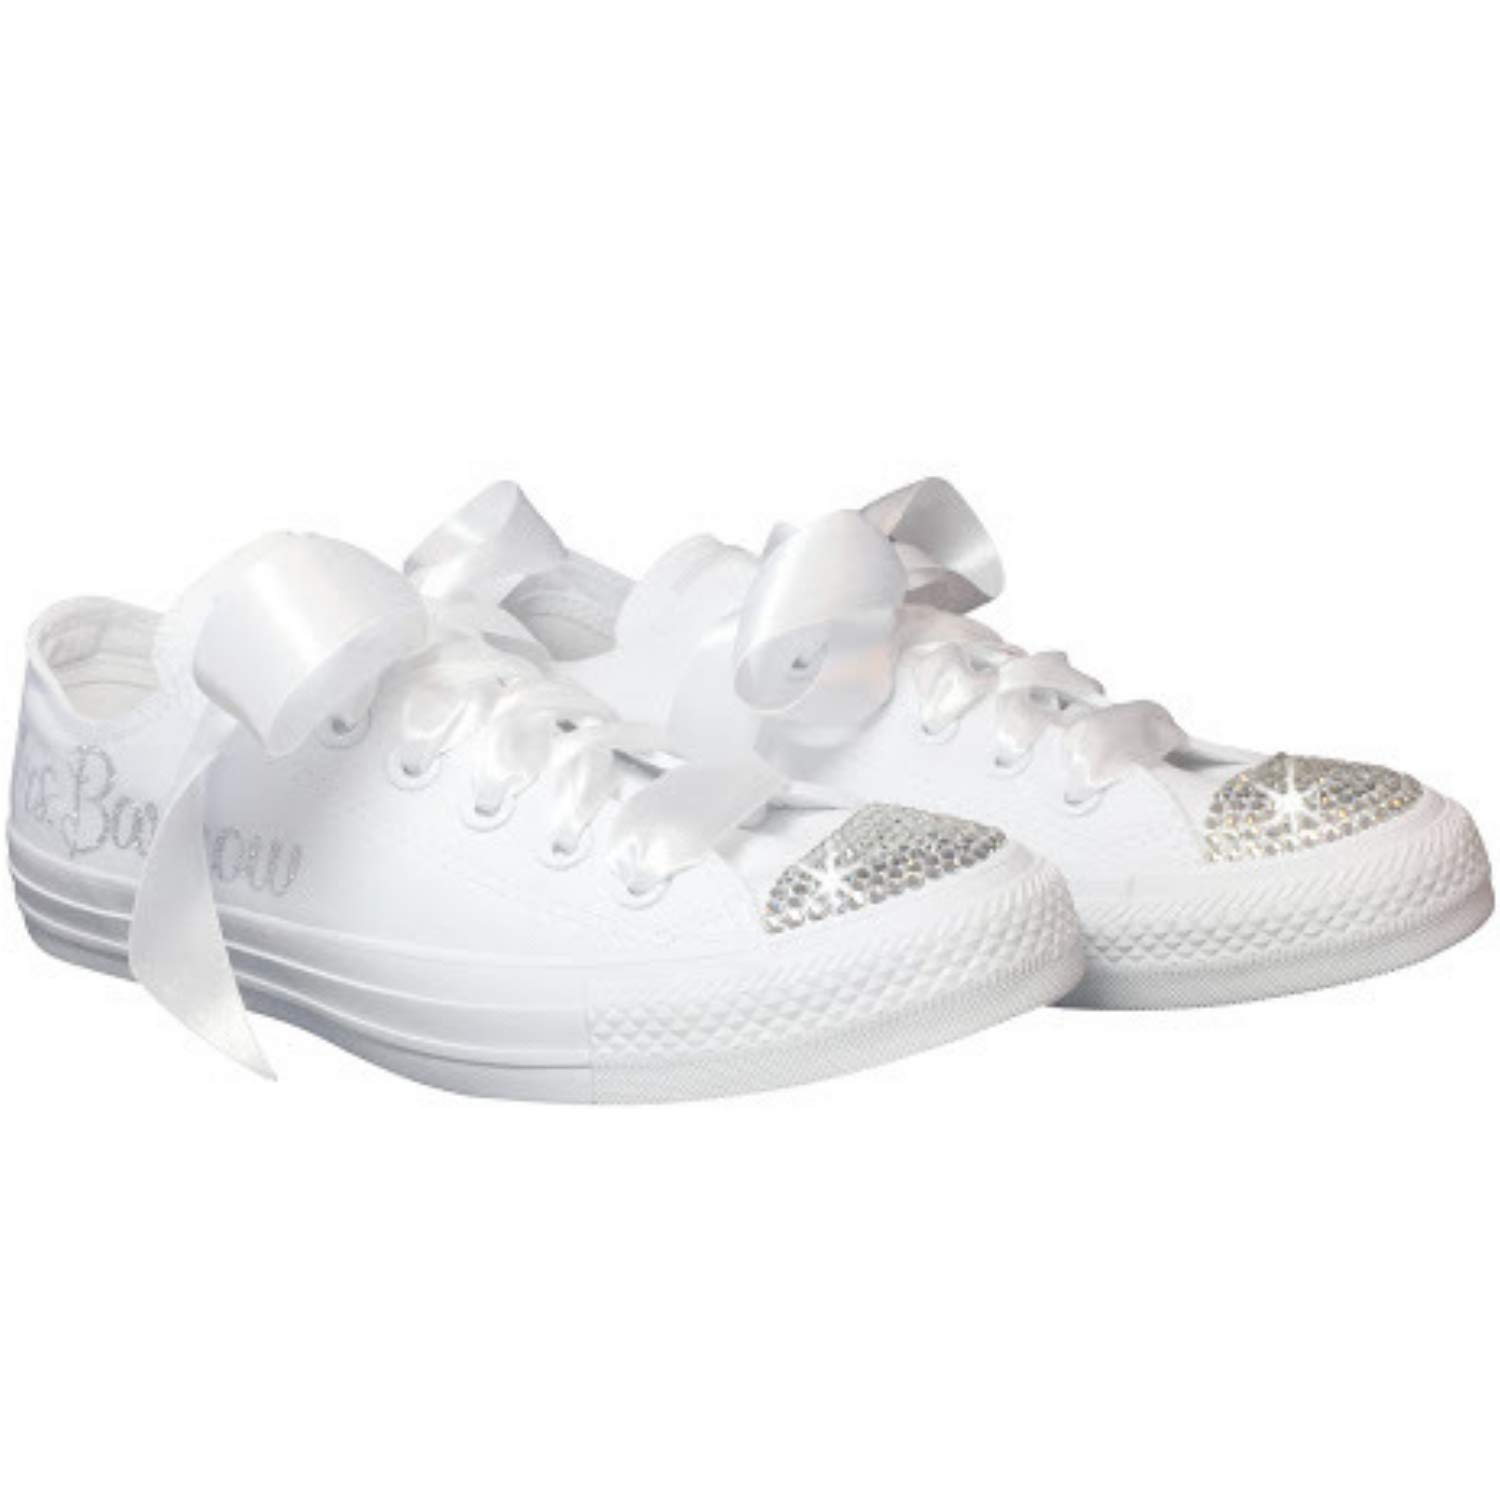 34e349f2108d Amazon.com  Wedding Sneakers BLINGED OUT Personalized CHUCKS with Swarovski  Crystals Custom for Quinceañera or Prom  Handmade